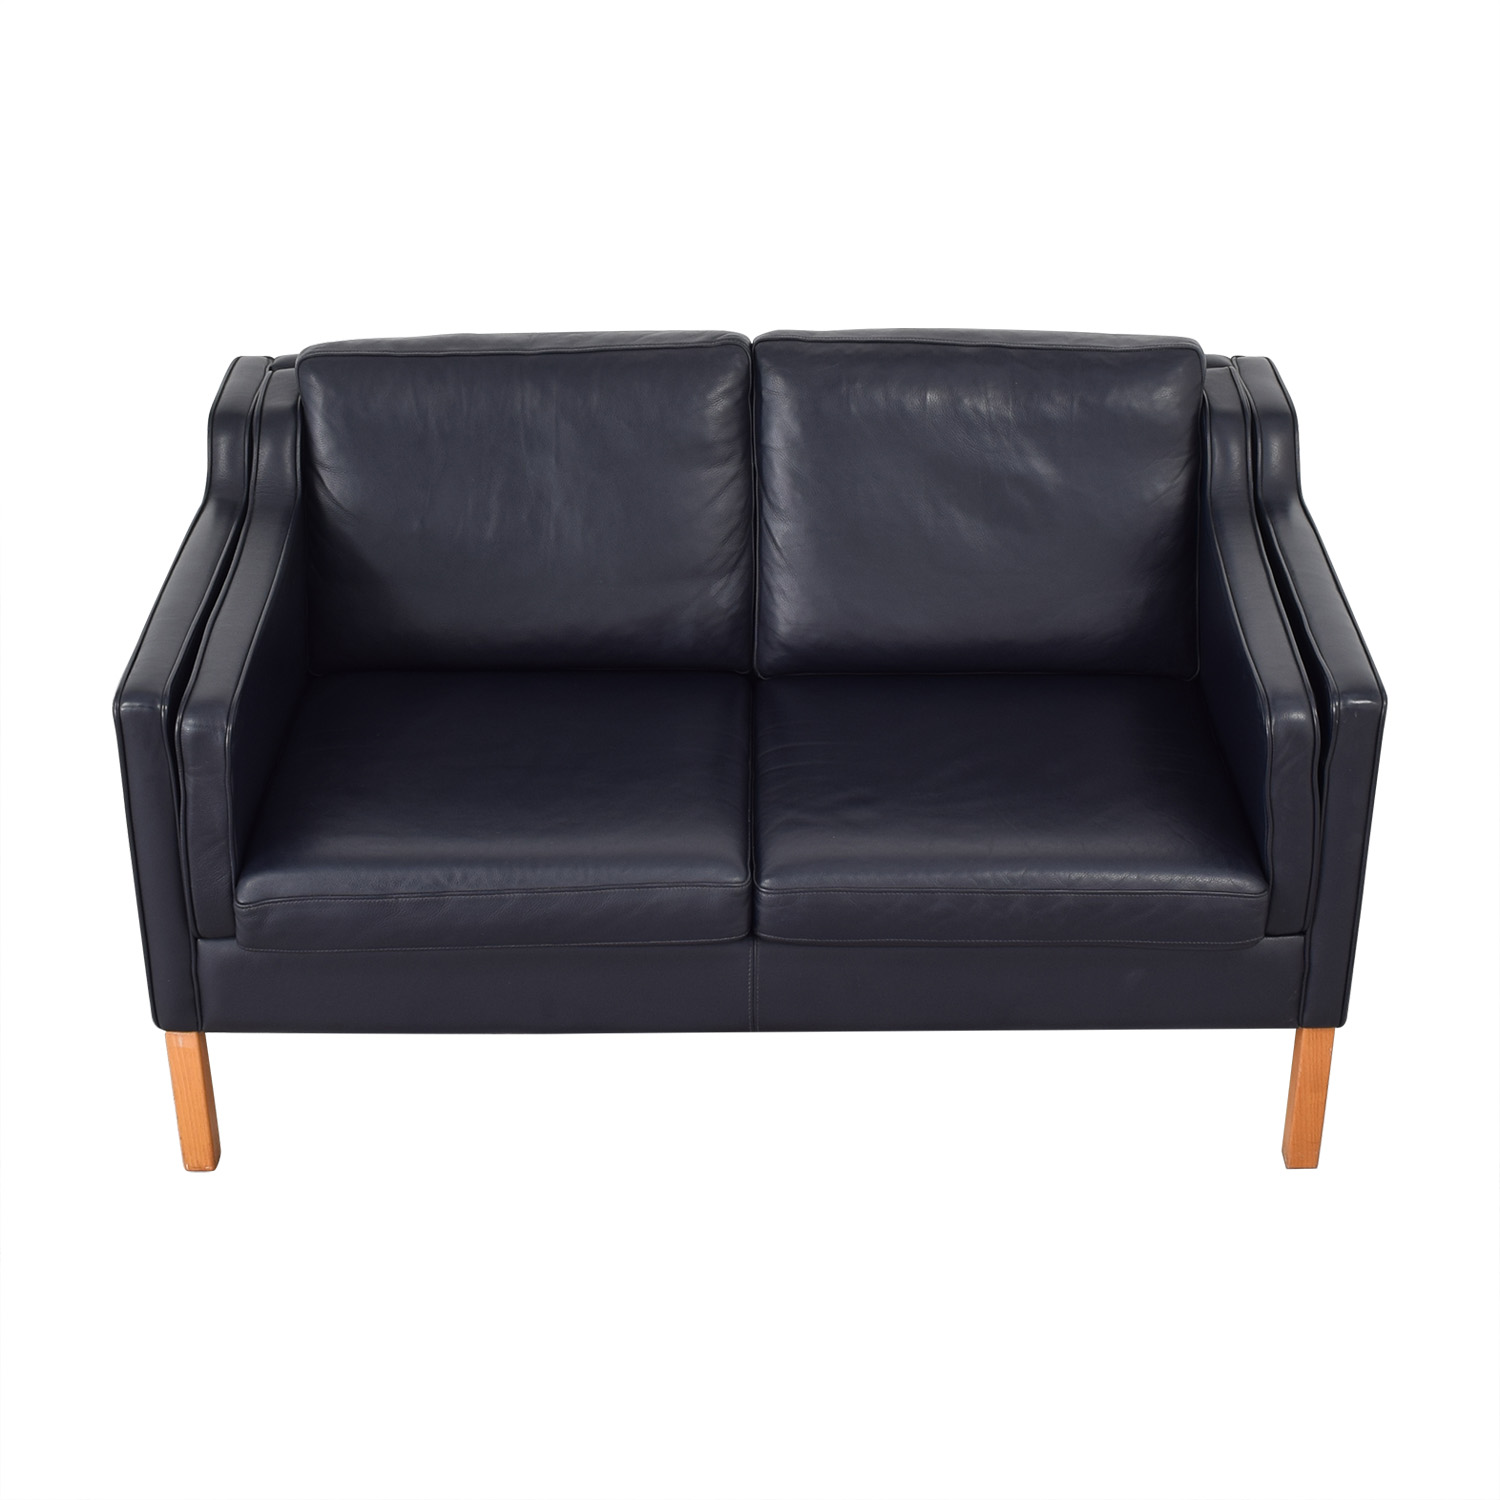 Stouby Stouby Eva Two Seater Loveseat ma